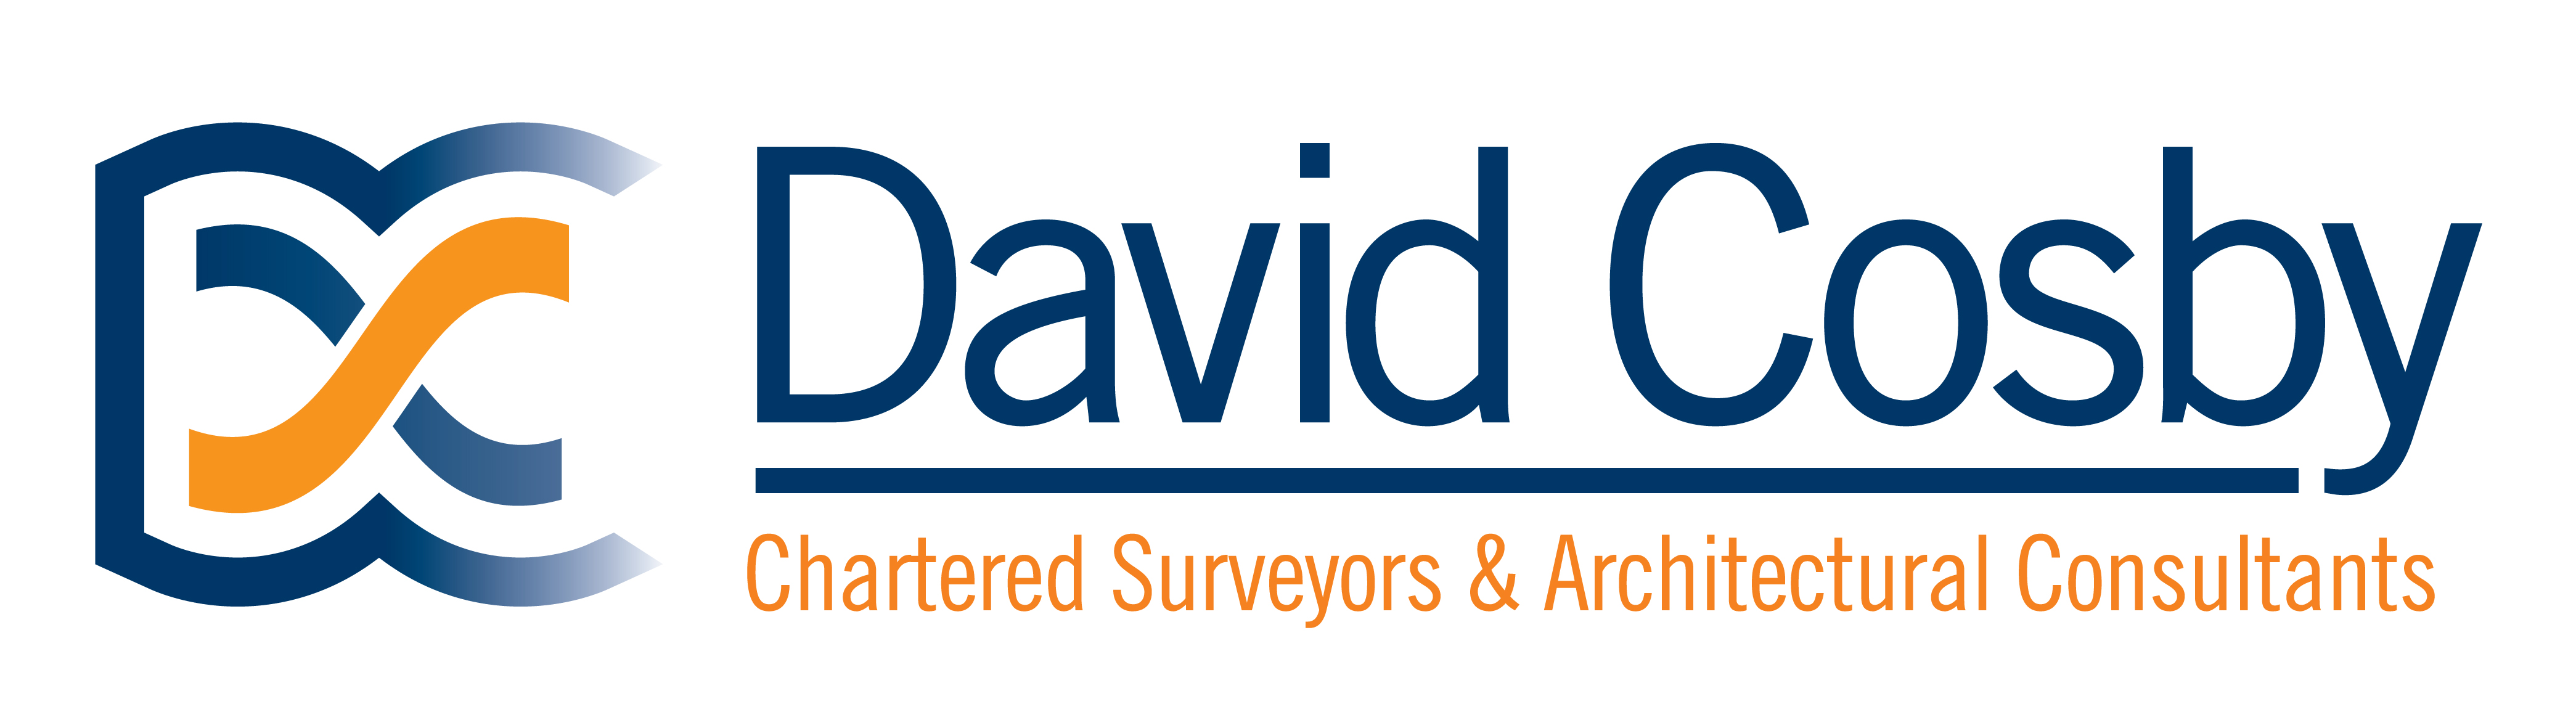 David Cosby Chartered Surveyors and Architetural Consultants